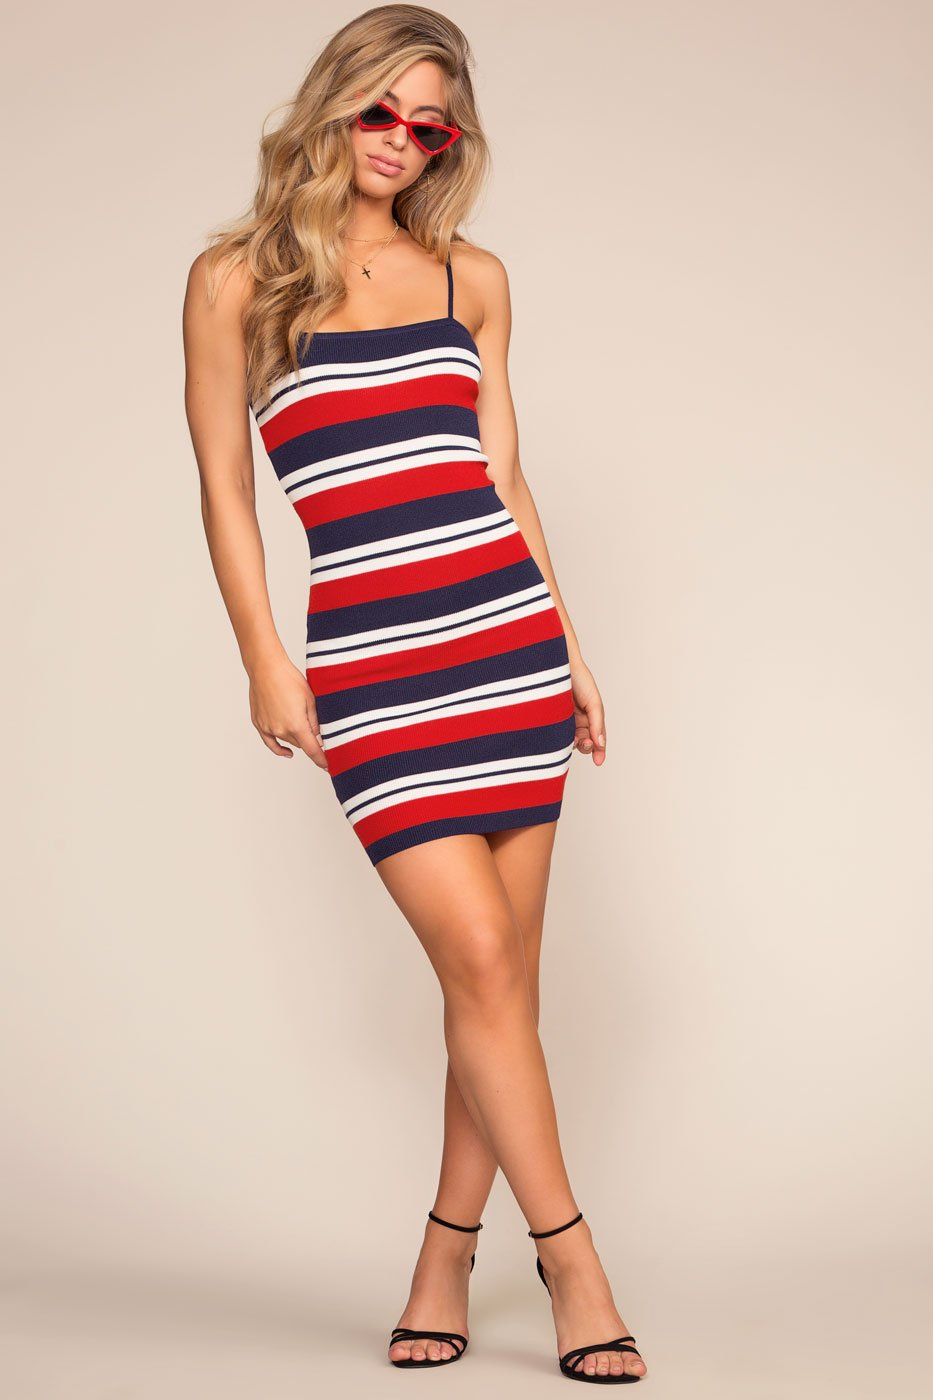 928584af8199 Shop Priceless | Bodycon | Dress | Red | White | Blue | Womens